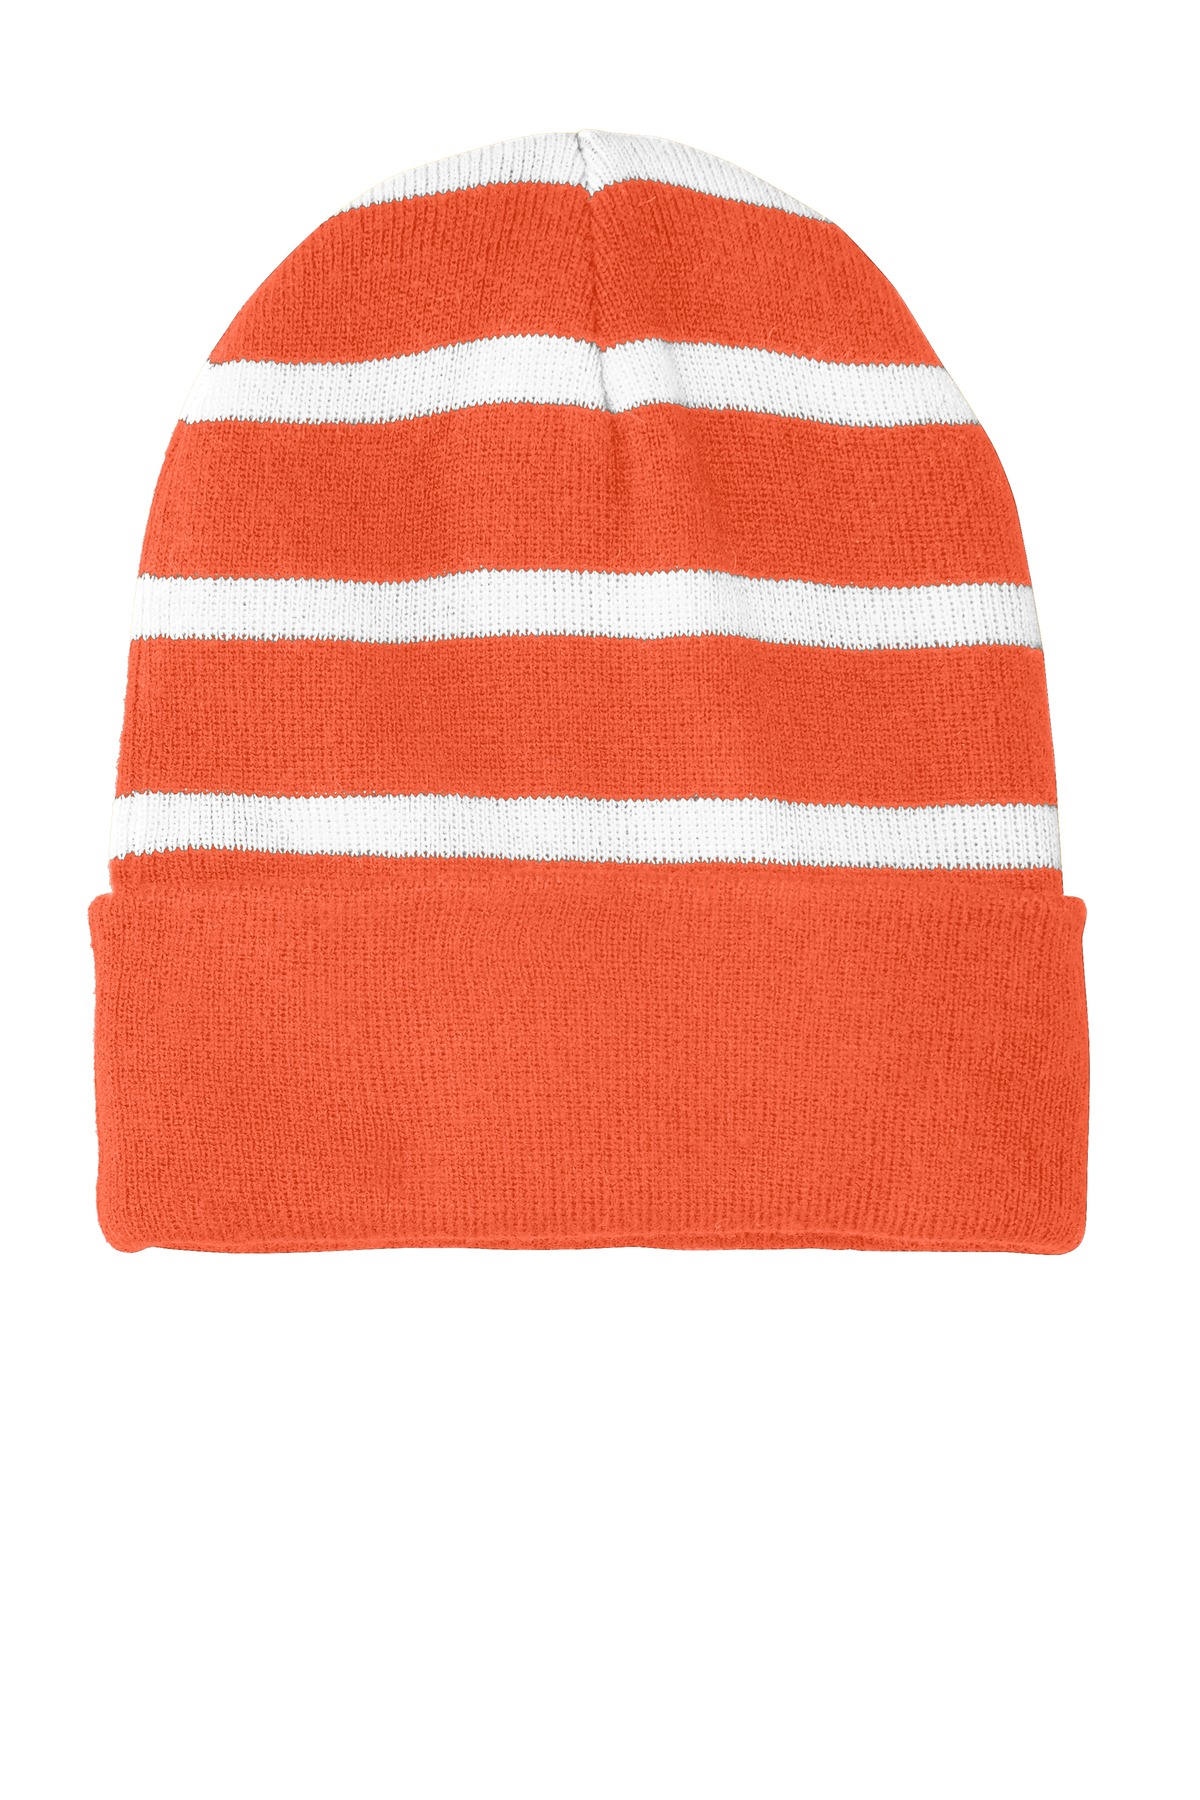 Sport-Tek ®  Striped Beanie with Solid Band. STC31 - Deep Orange/ White